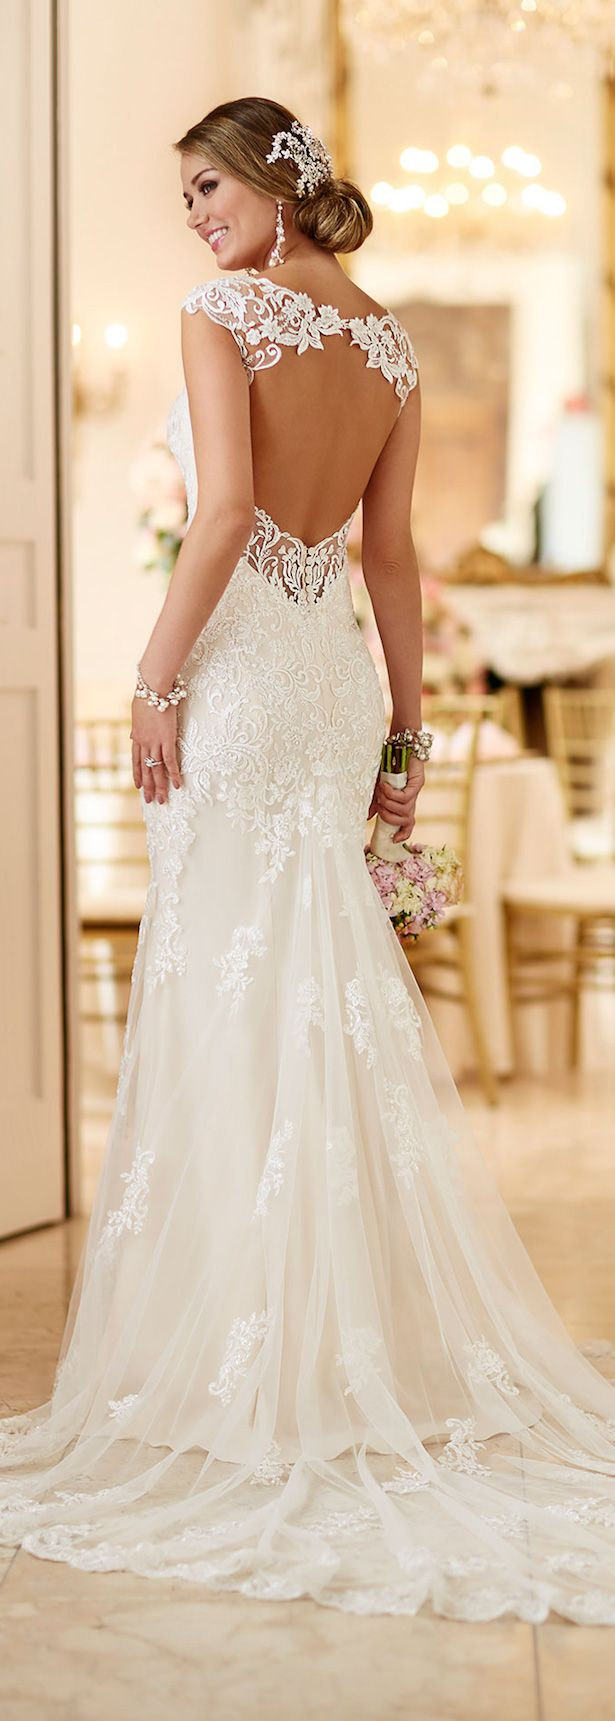 The 25 best wedding dresses ideas on pinterest spring for Pinterest wedding dress lace